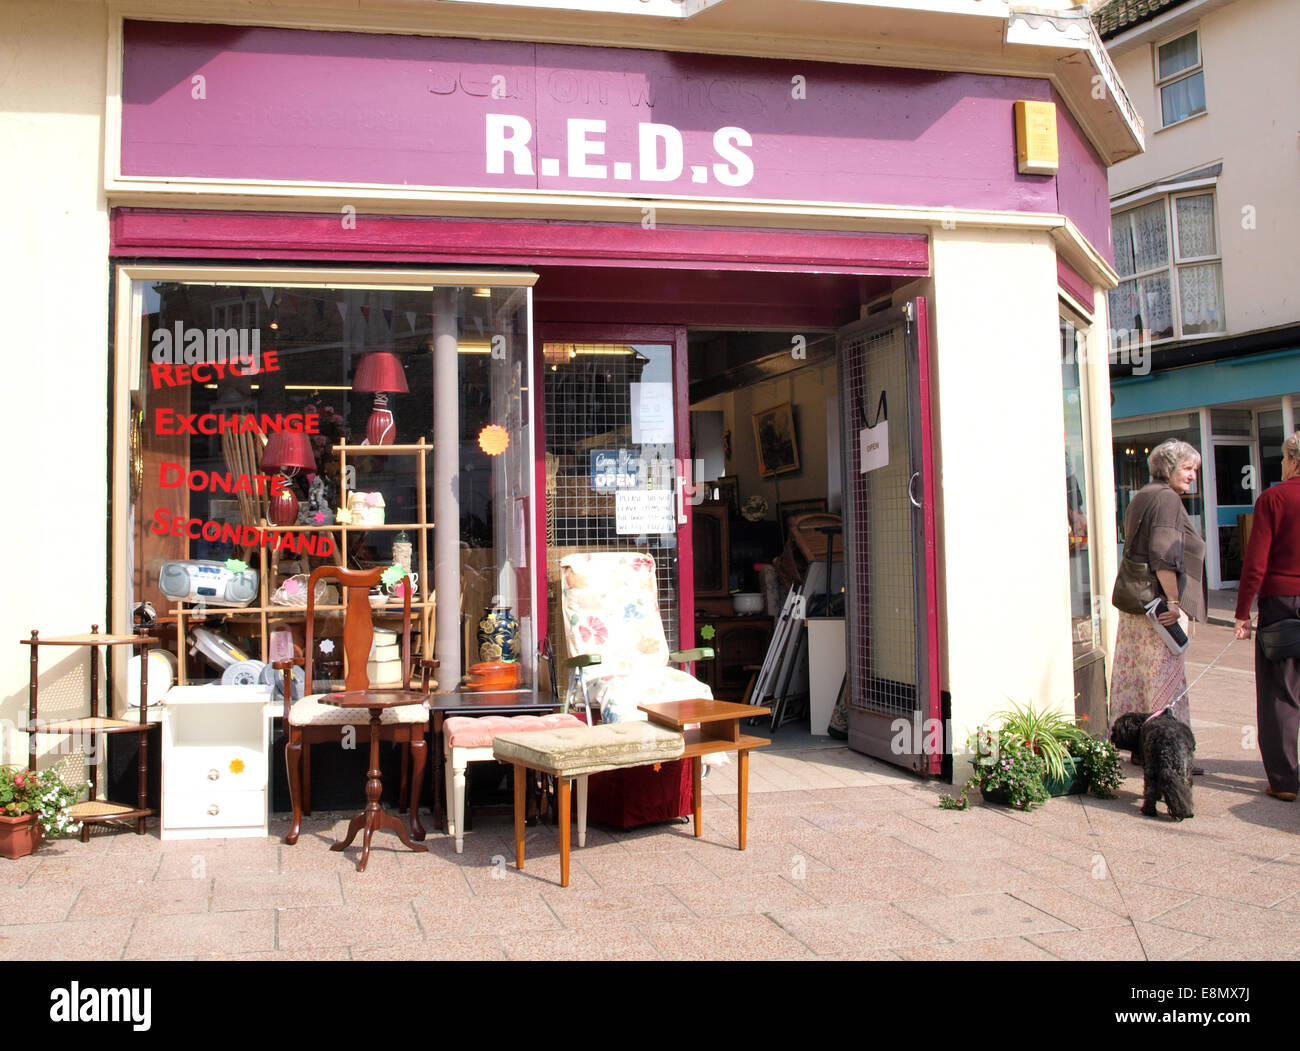 Second hand shop, Seaton, Devon, UK Stock Photo: 74218358 - Alamy